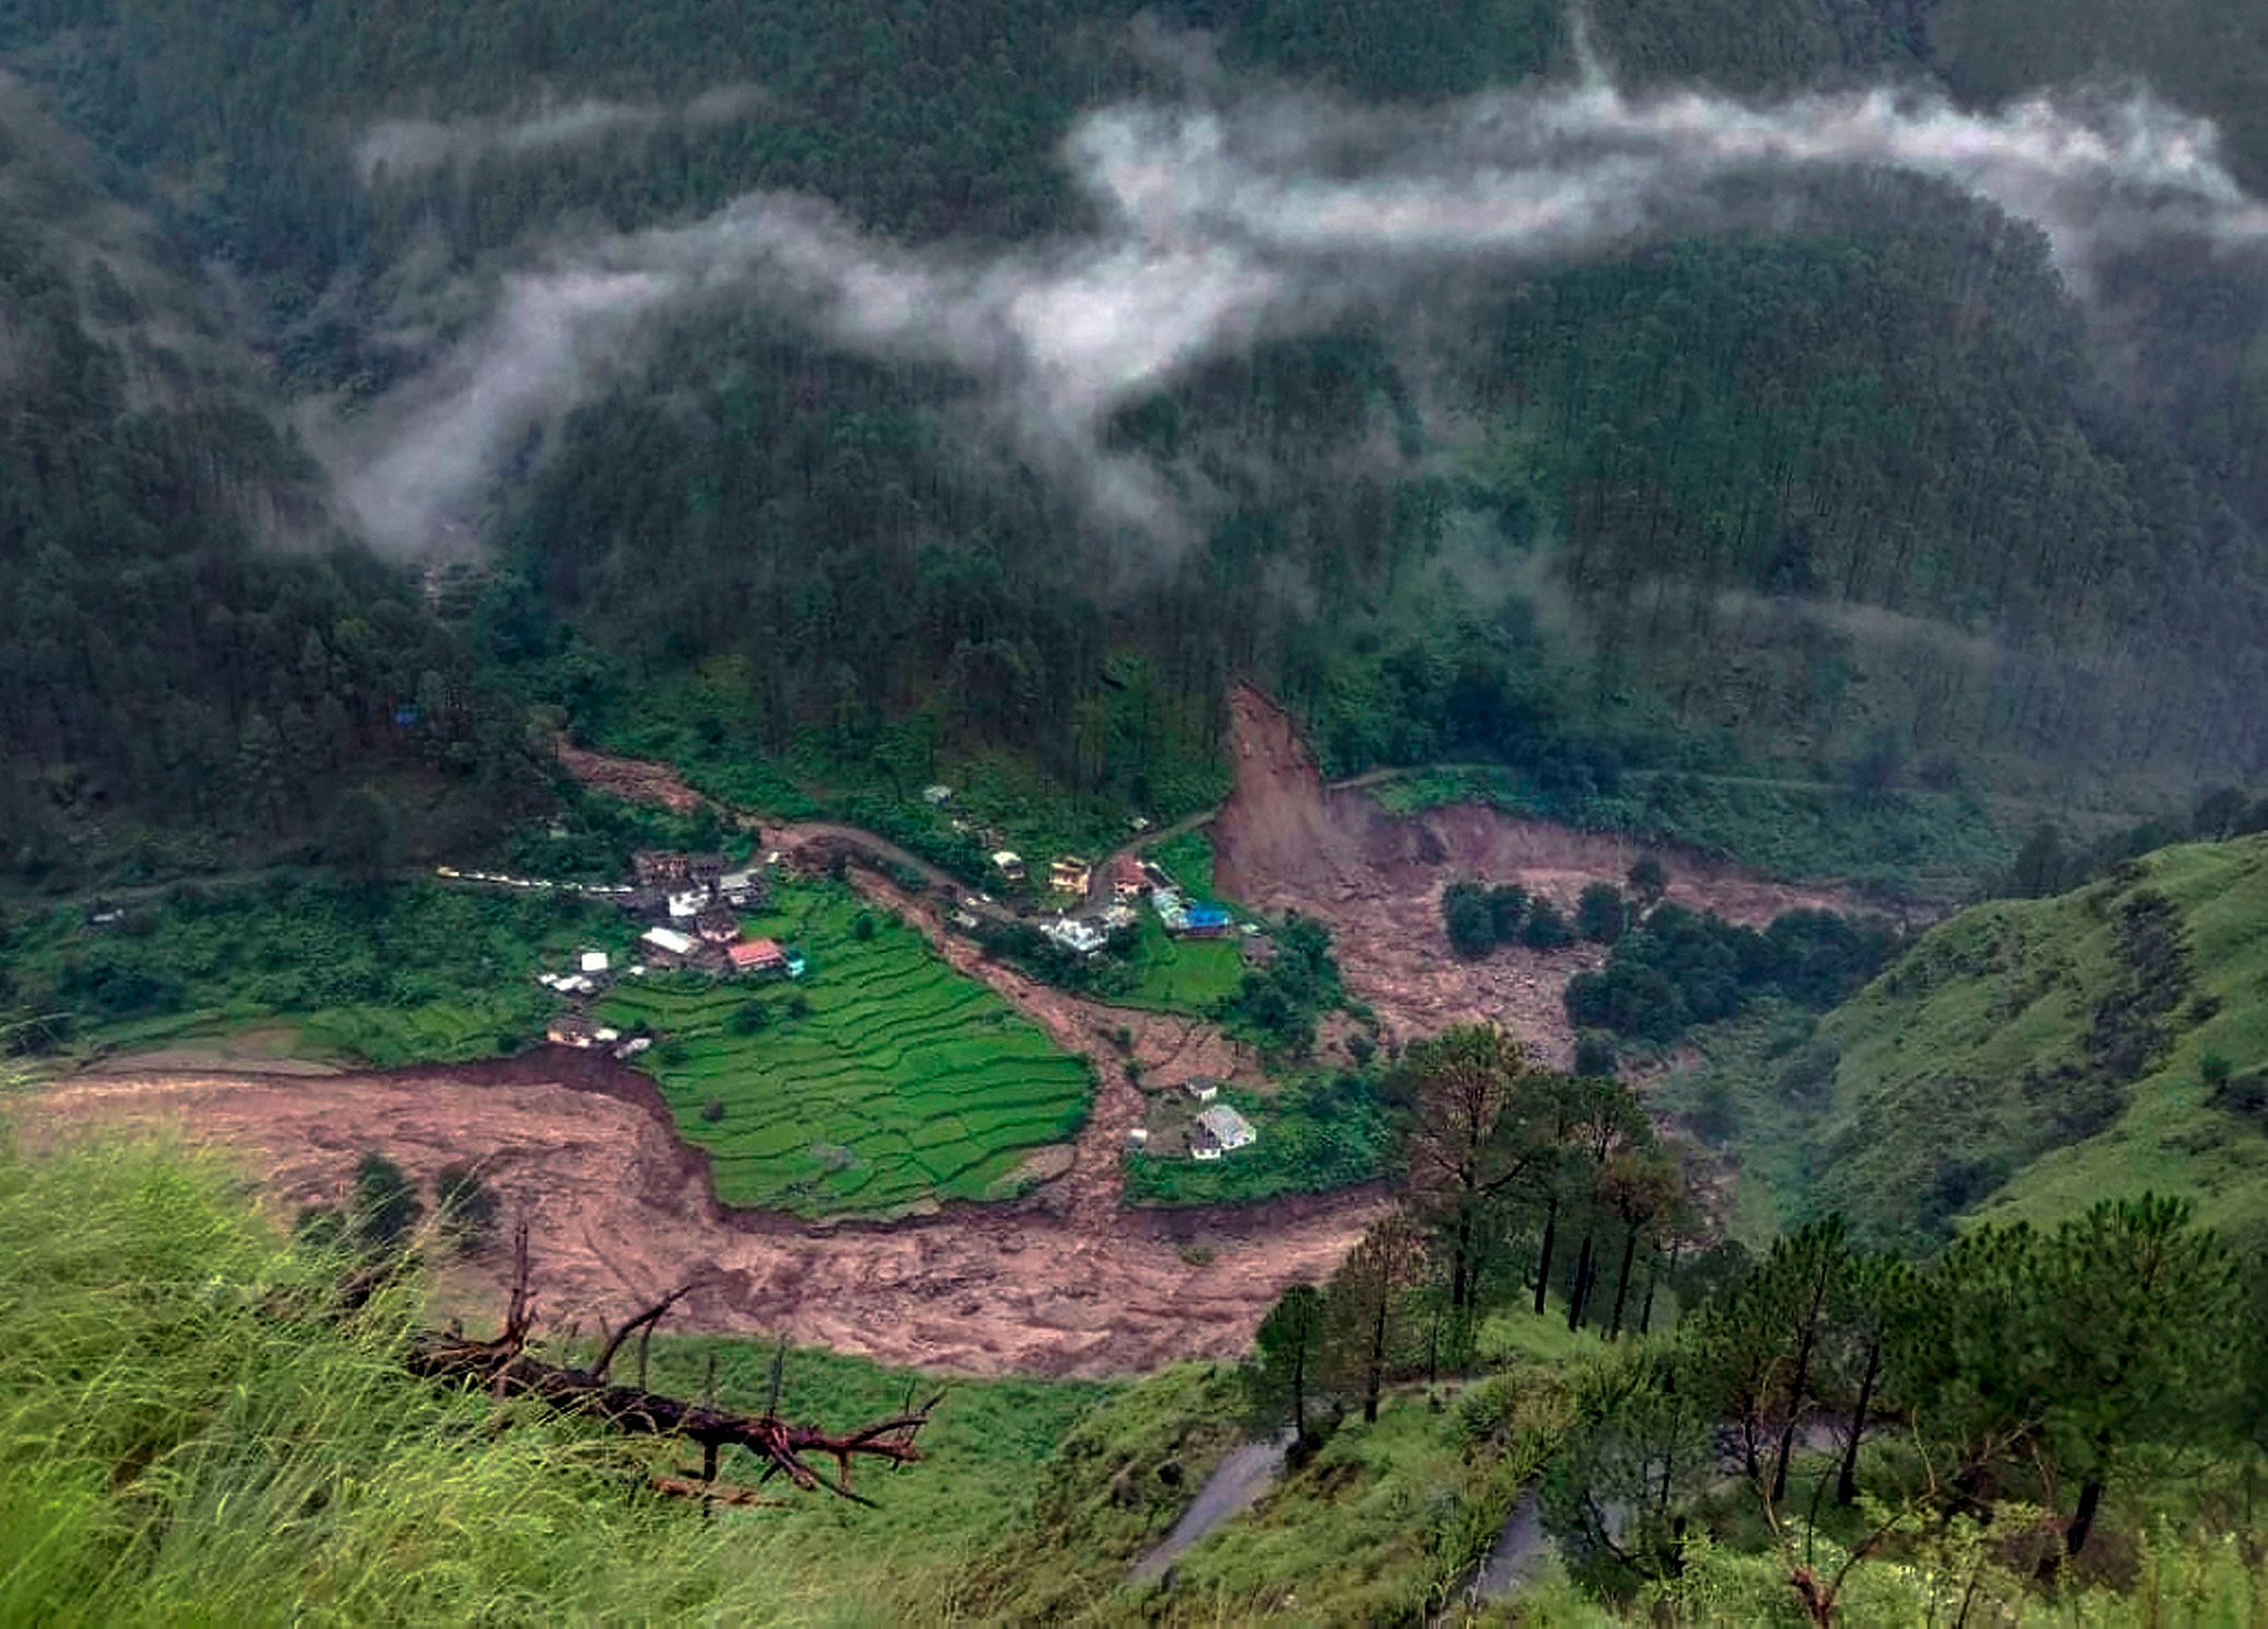 A view of the destruction caused by landslide following a cloud burst in Uttarakashi district of Uttarakhand on August 18, 2019.